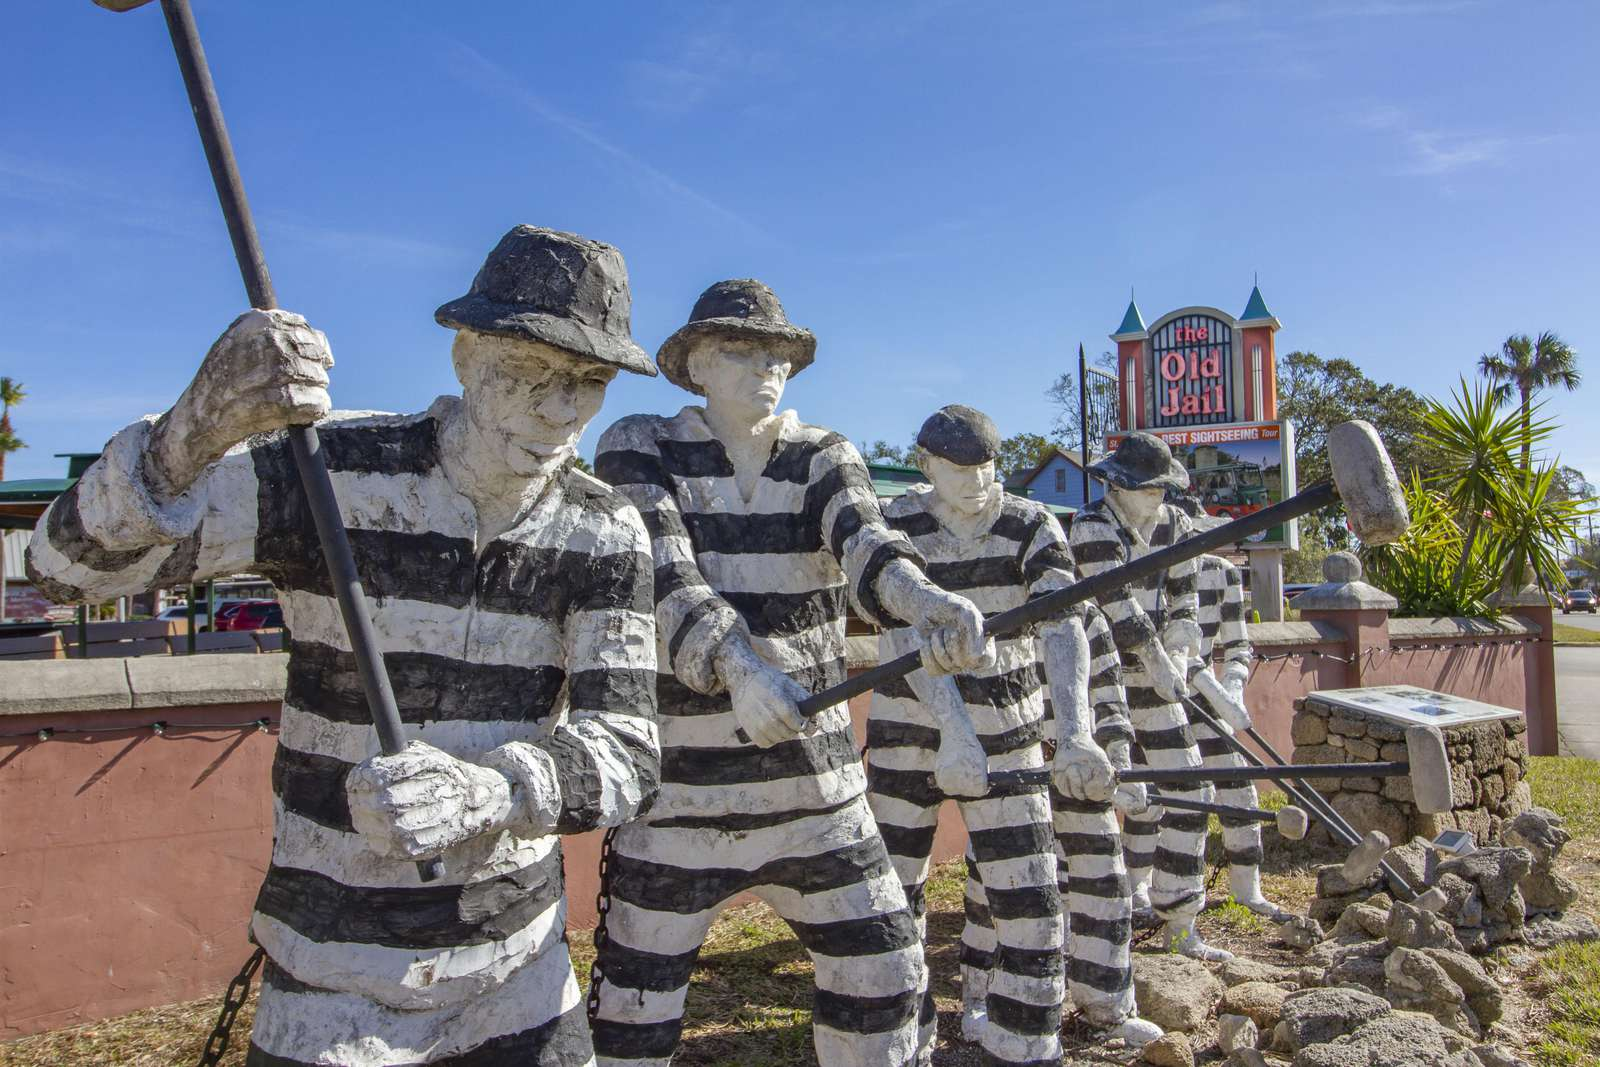 Statues of Prisoners at the St. Augustine Old City Jail